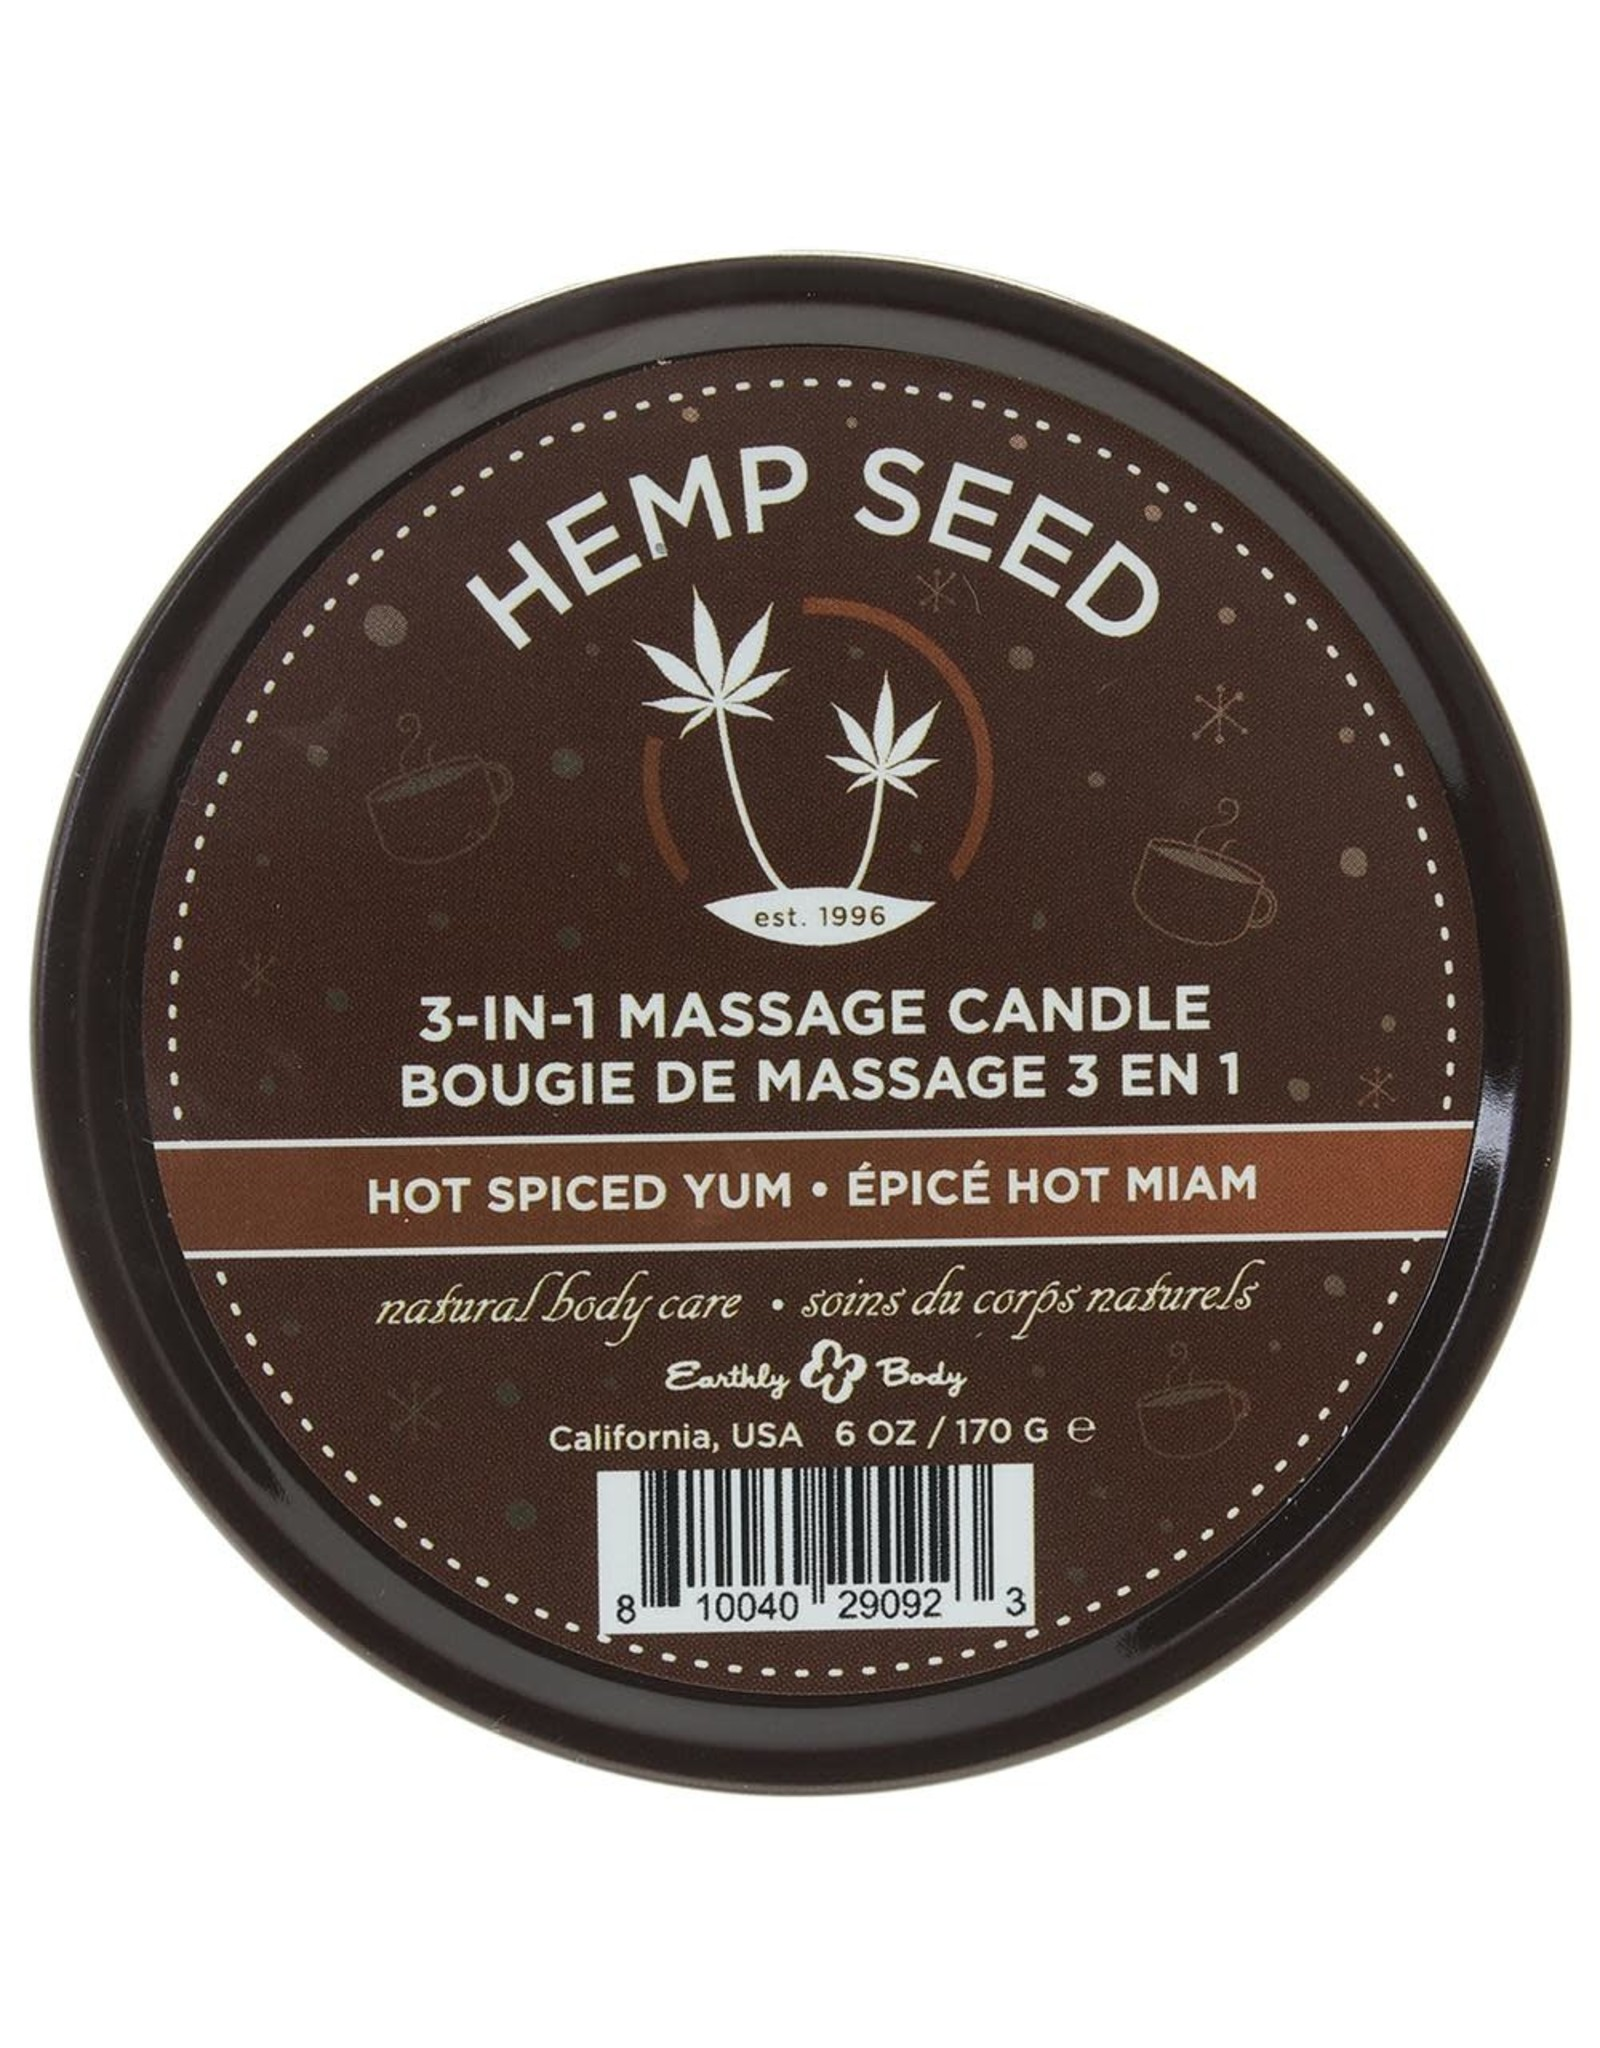 EARTHLY BODY - 3-IN-1 MASSAGE CANDLE 6OZ/170G - HOT SPICED YUM